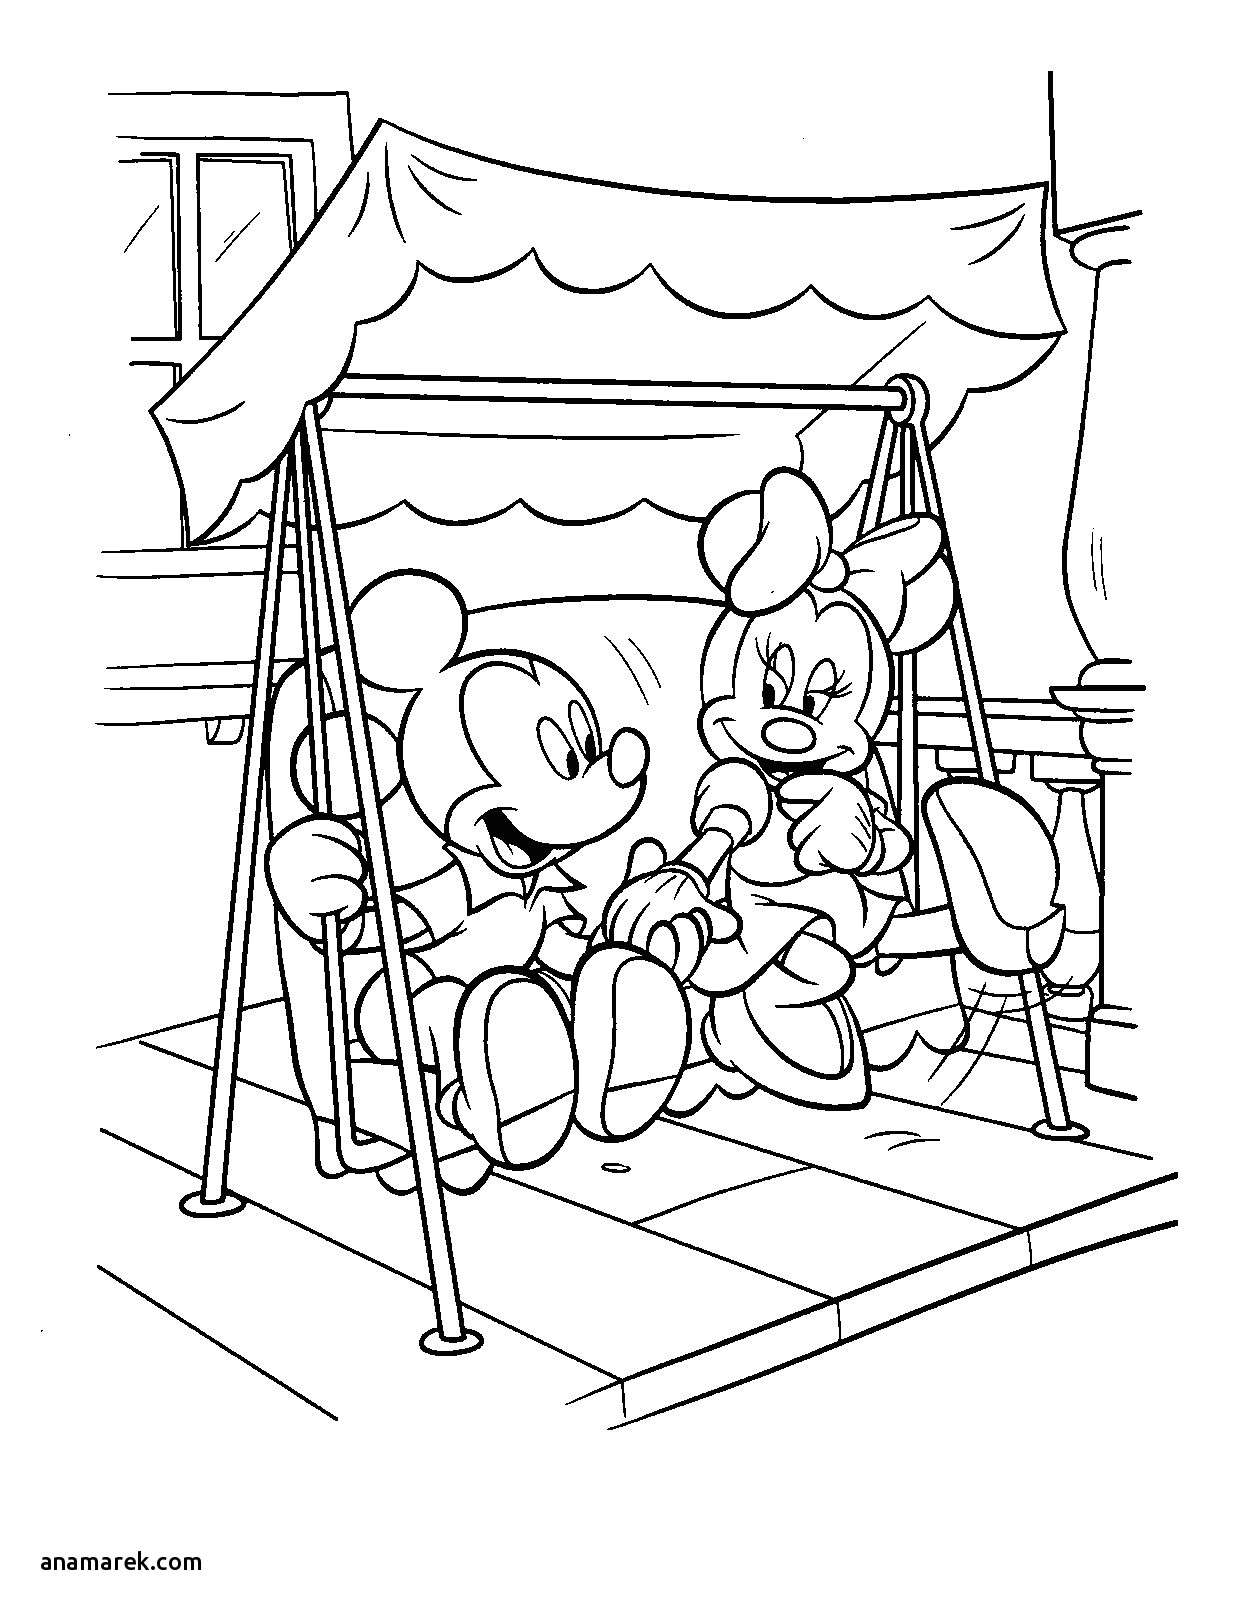 Christmas Coloring Pages Sleigh With Santa Page